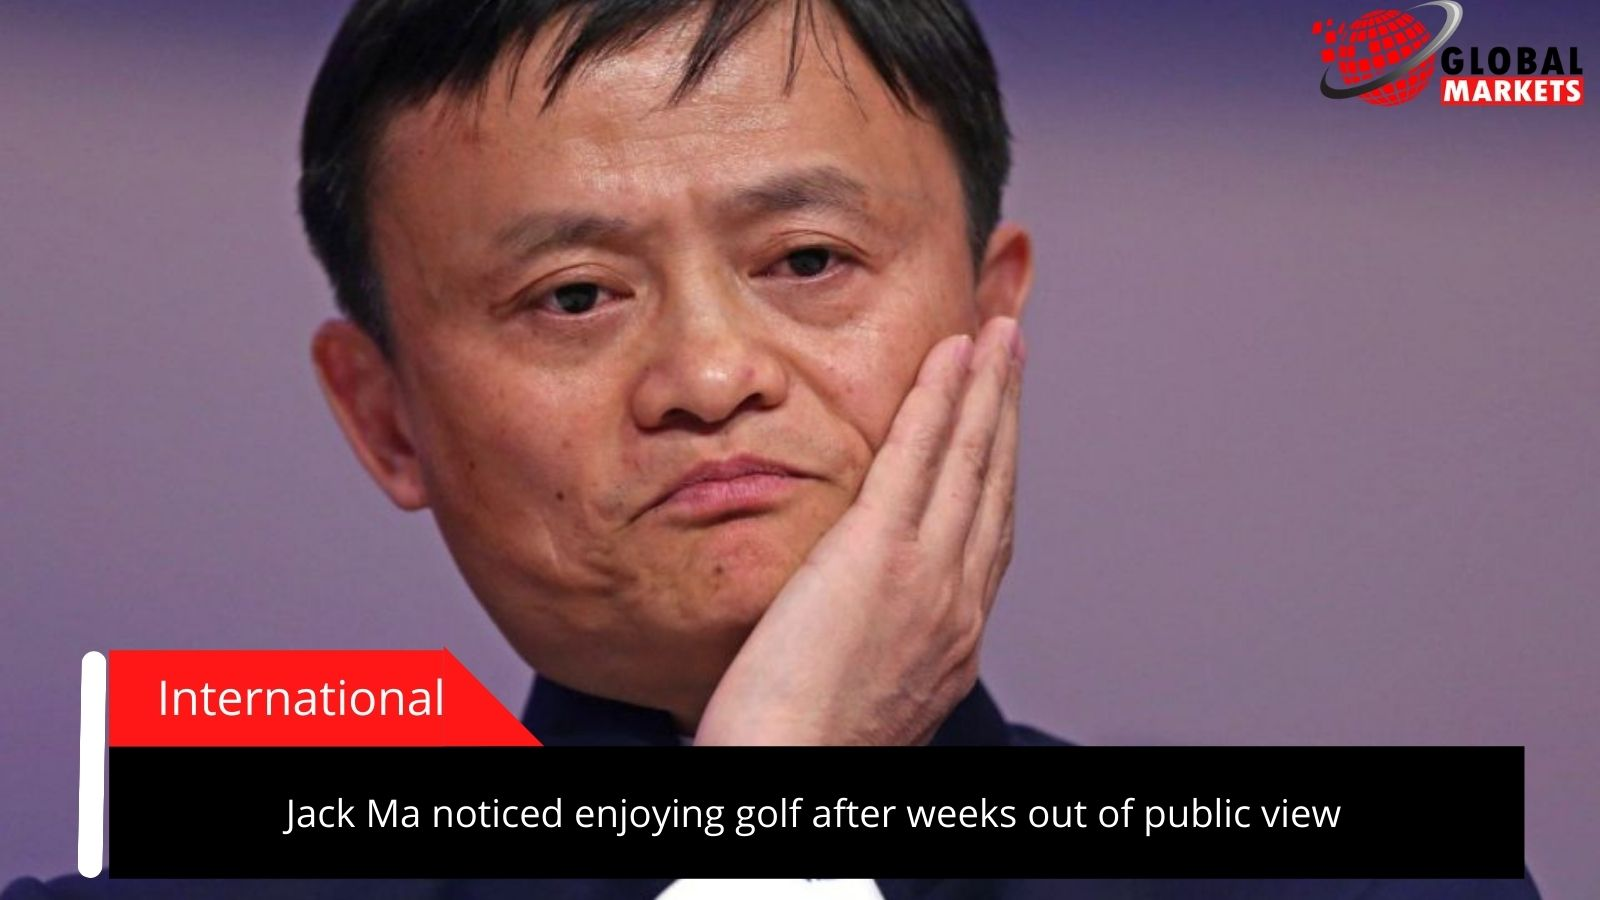 Jack Ma noticed enjoying golf after weeks out of public view